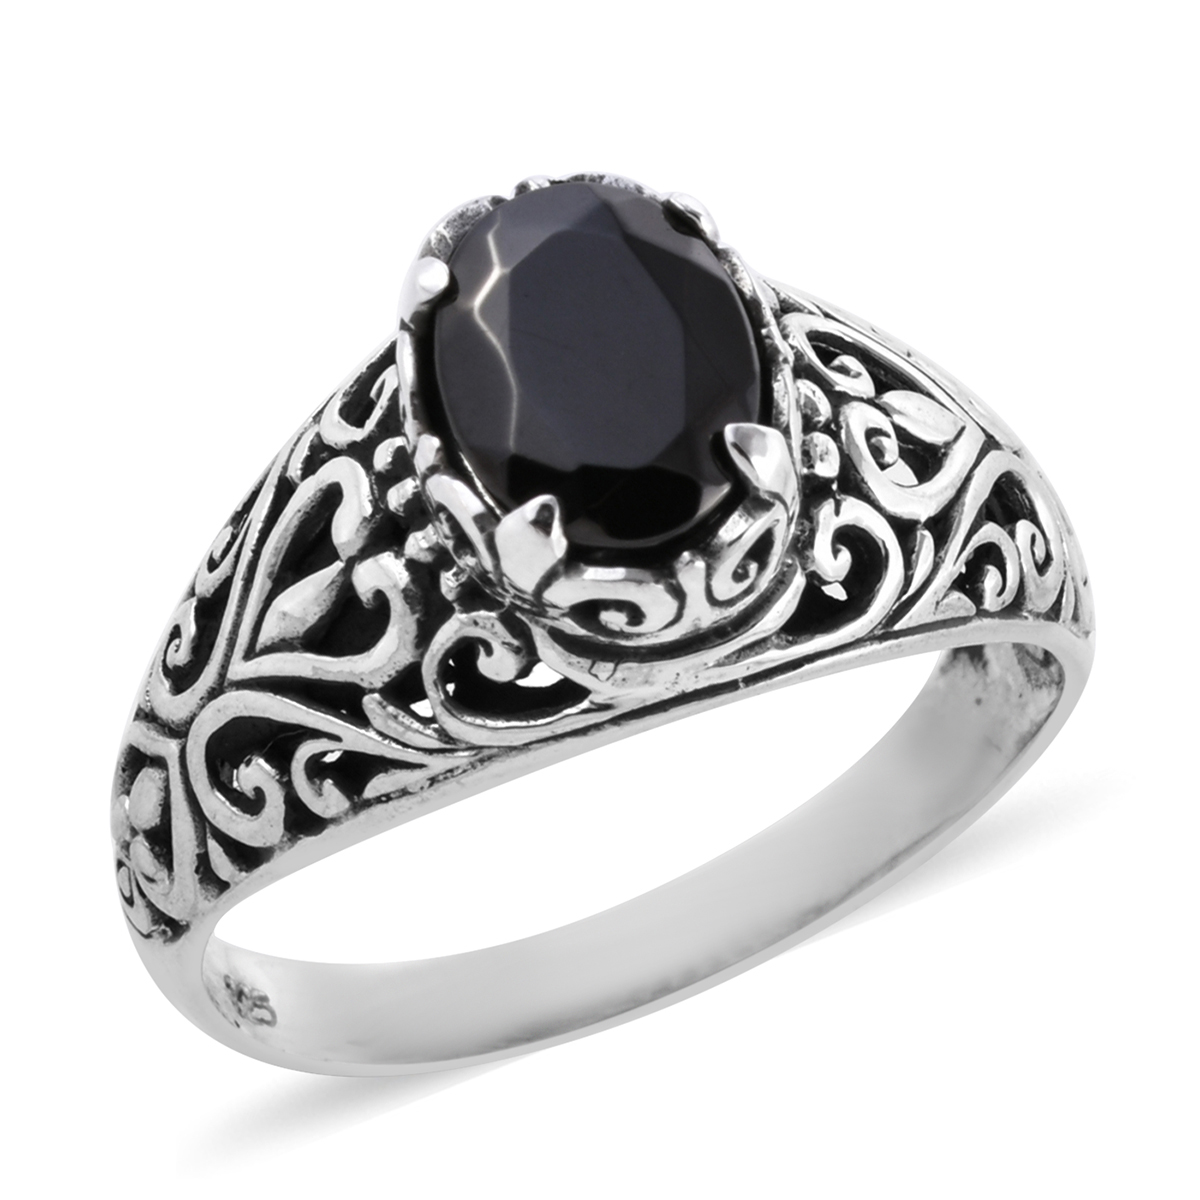 Bali Legacy Silver Shungite Ring in Sterling Silver (Size 7 0) 1 10 ctw